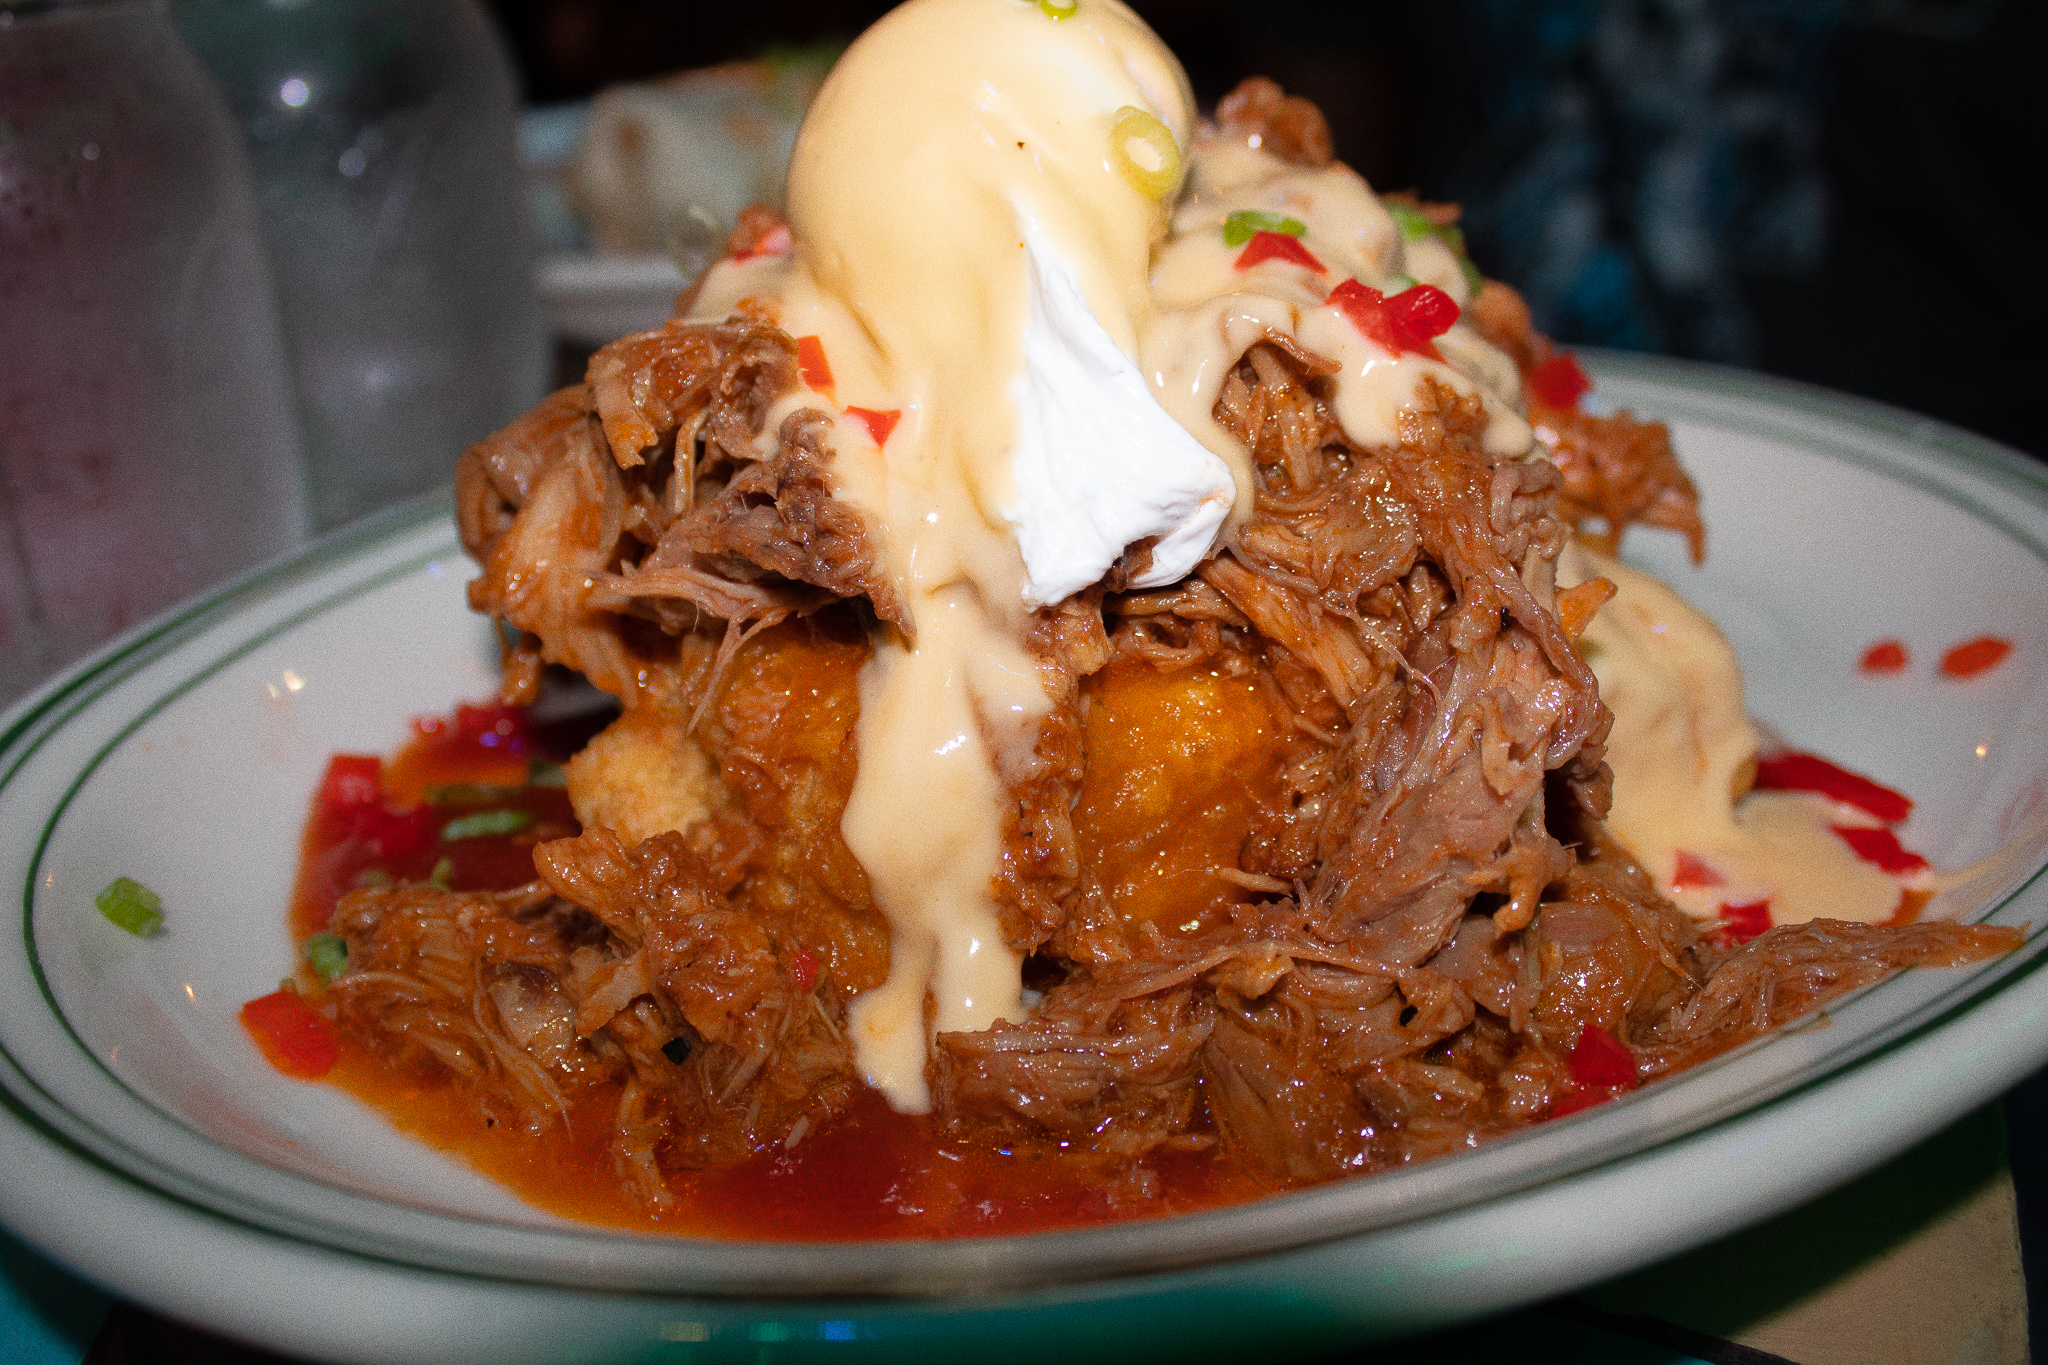 South by Soutwest Benedict - crispy corn tamale, smoked pulled pork bbq, and hollandaise sauce